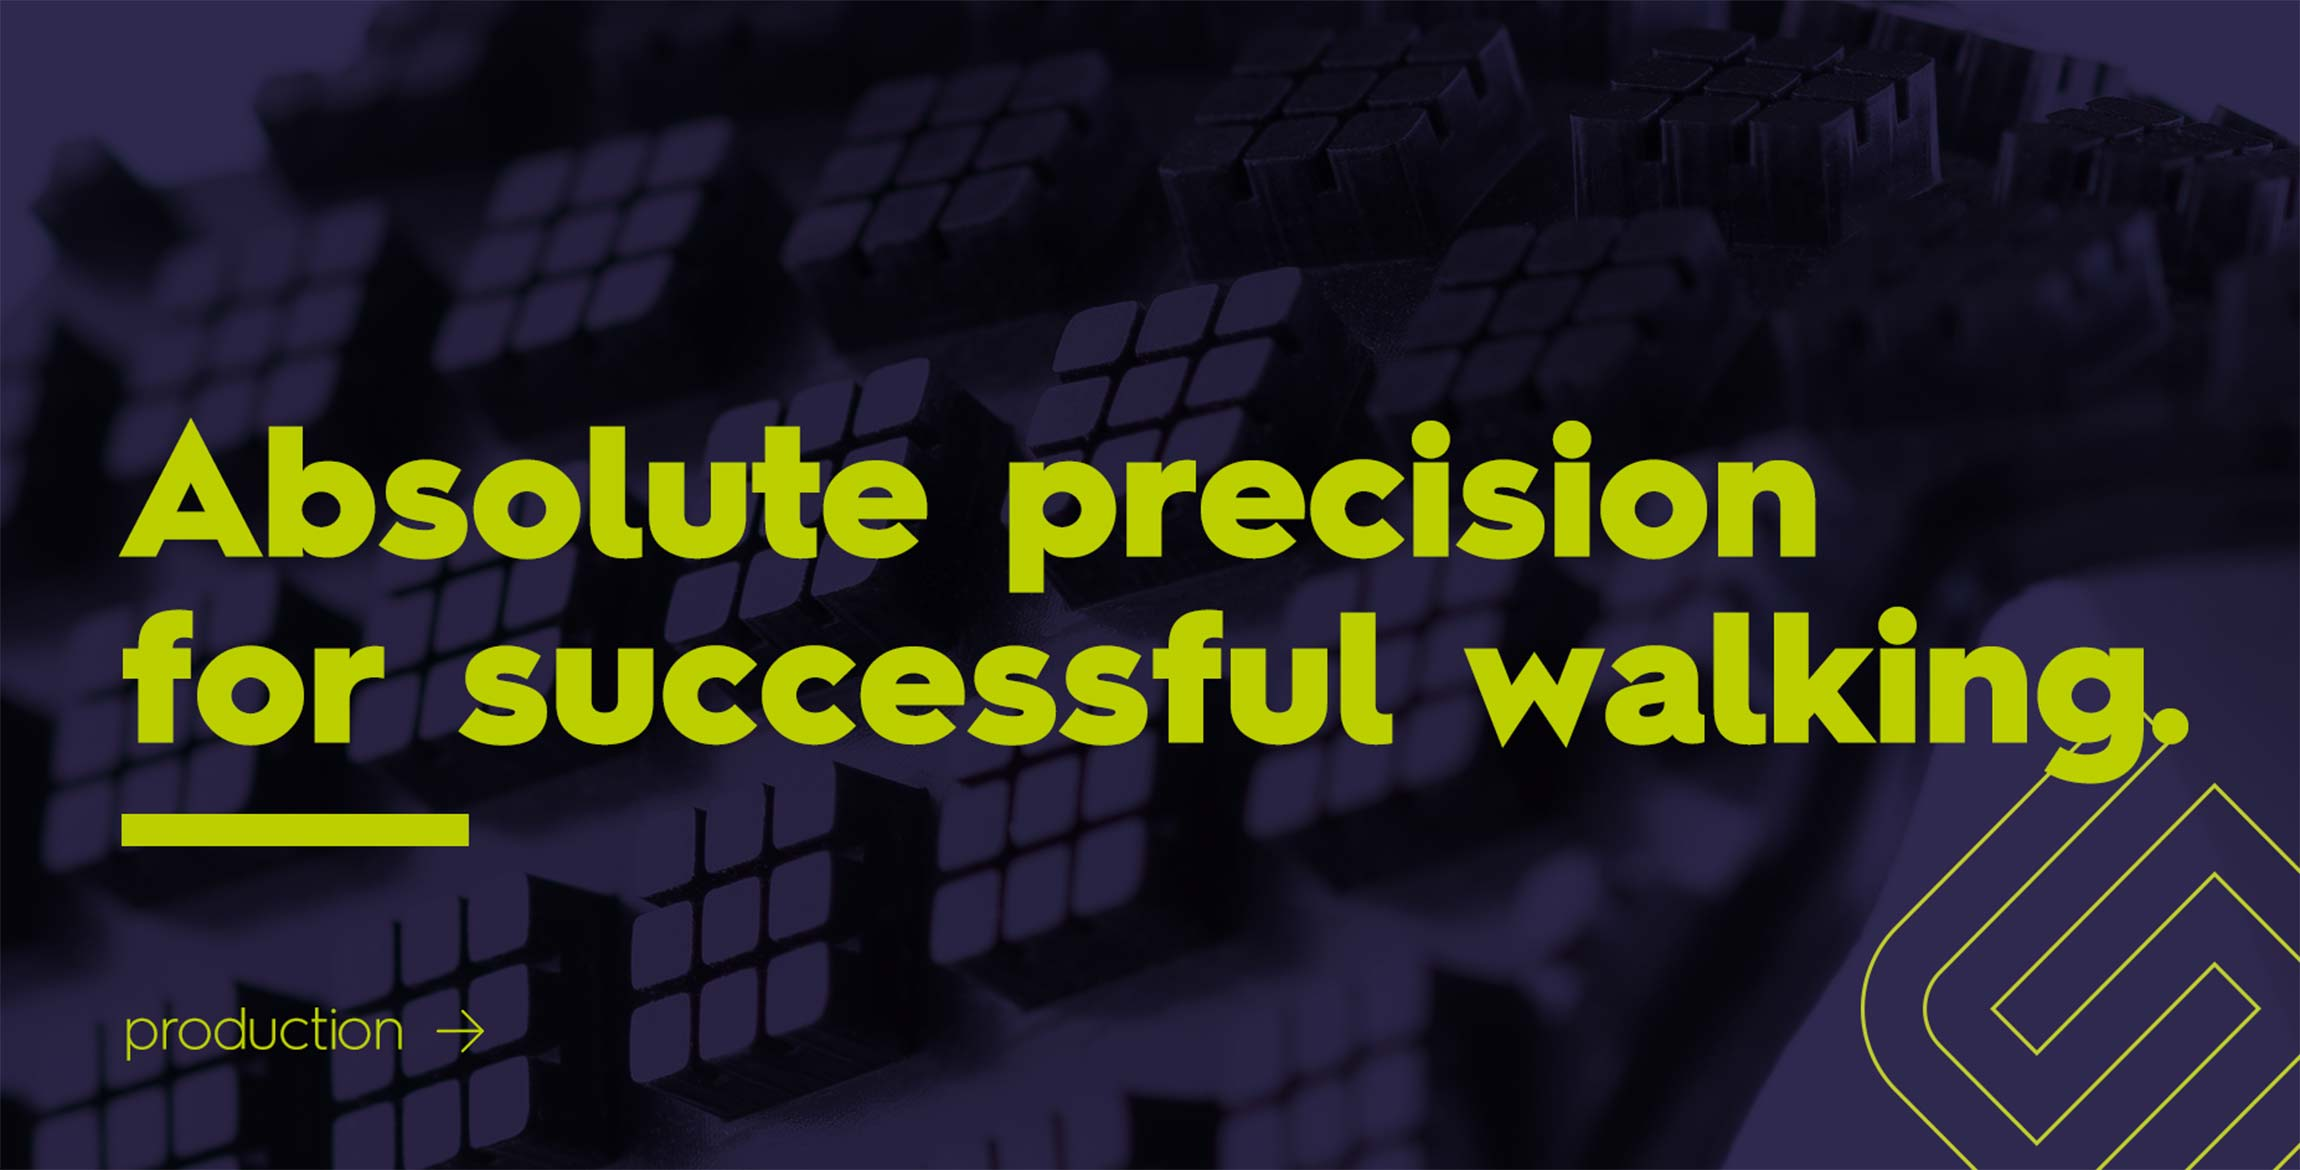 Absolute precision for successful walking